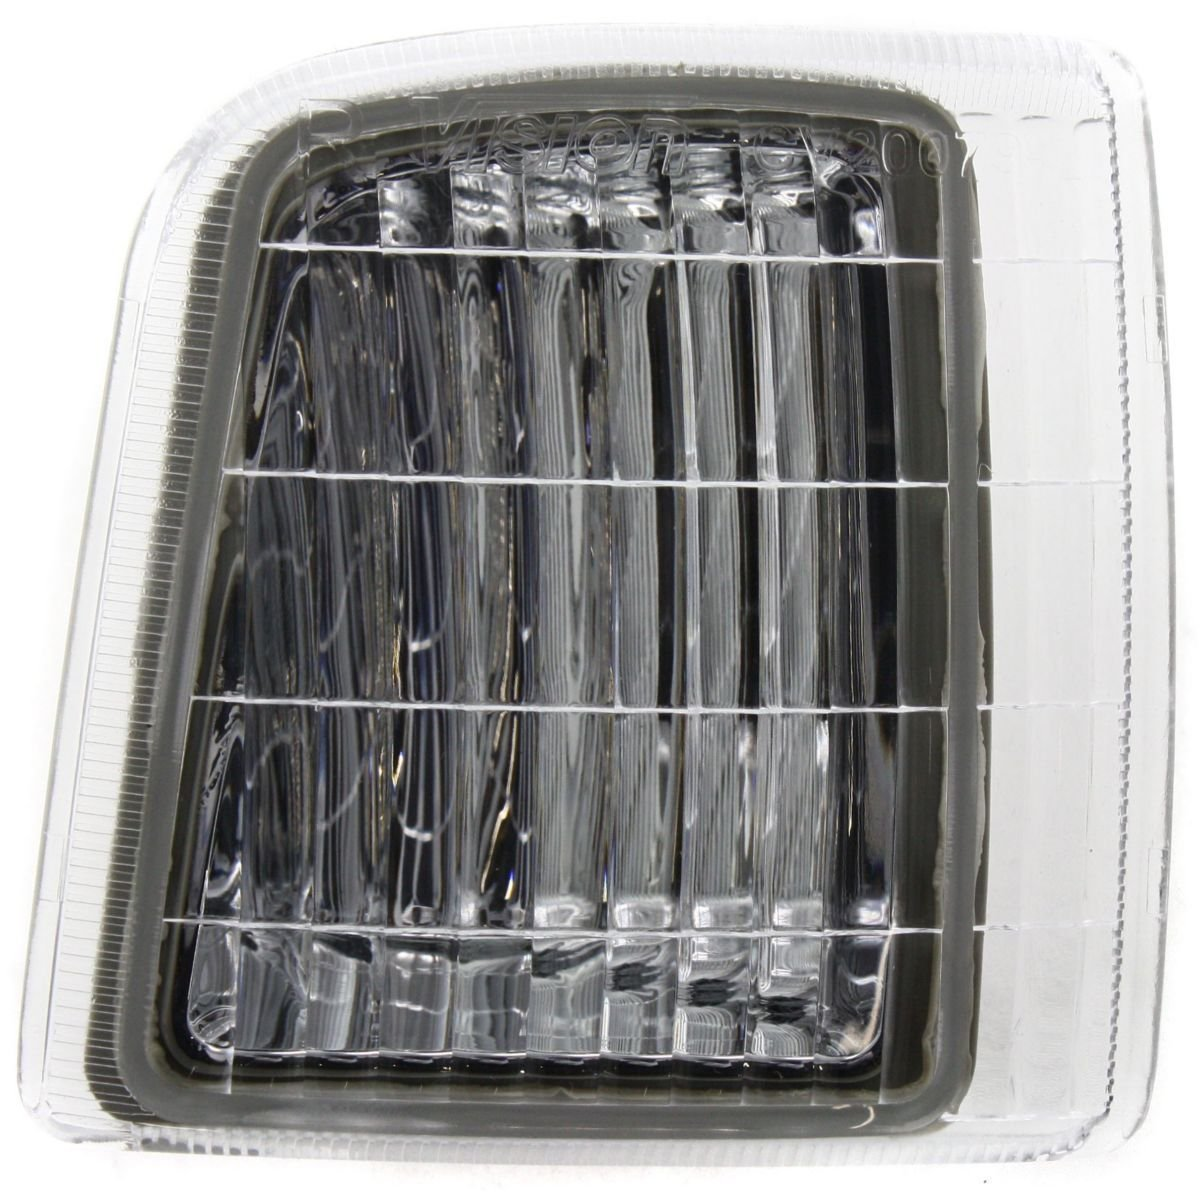 DAT AUTO PARTS Side Marker Light Assembly Replacement for 81-91 GMC Suburban Front Chrome Trim Right Passenger Side GM2551107